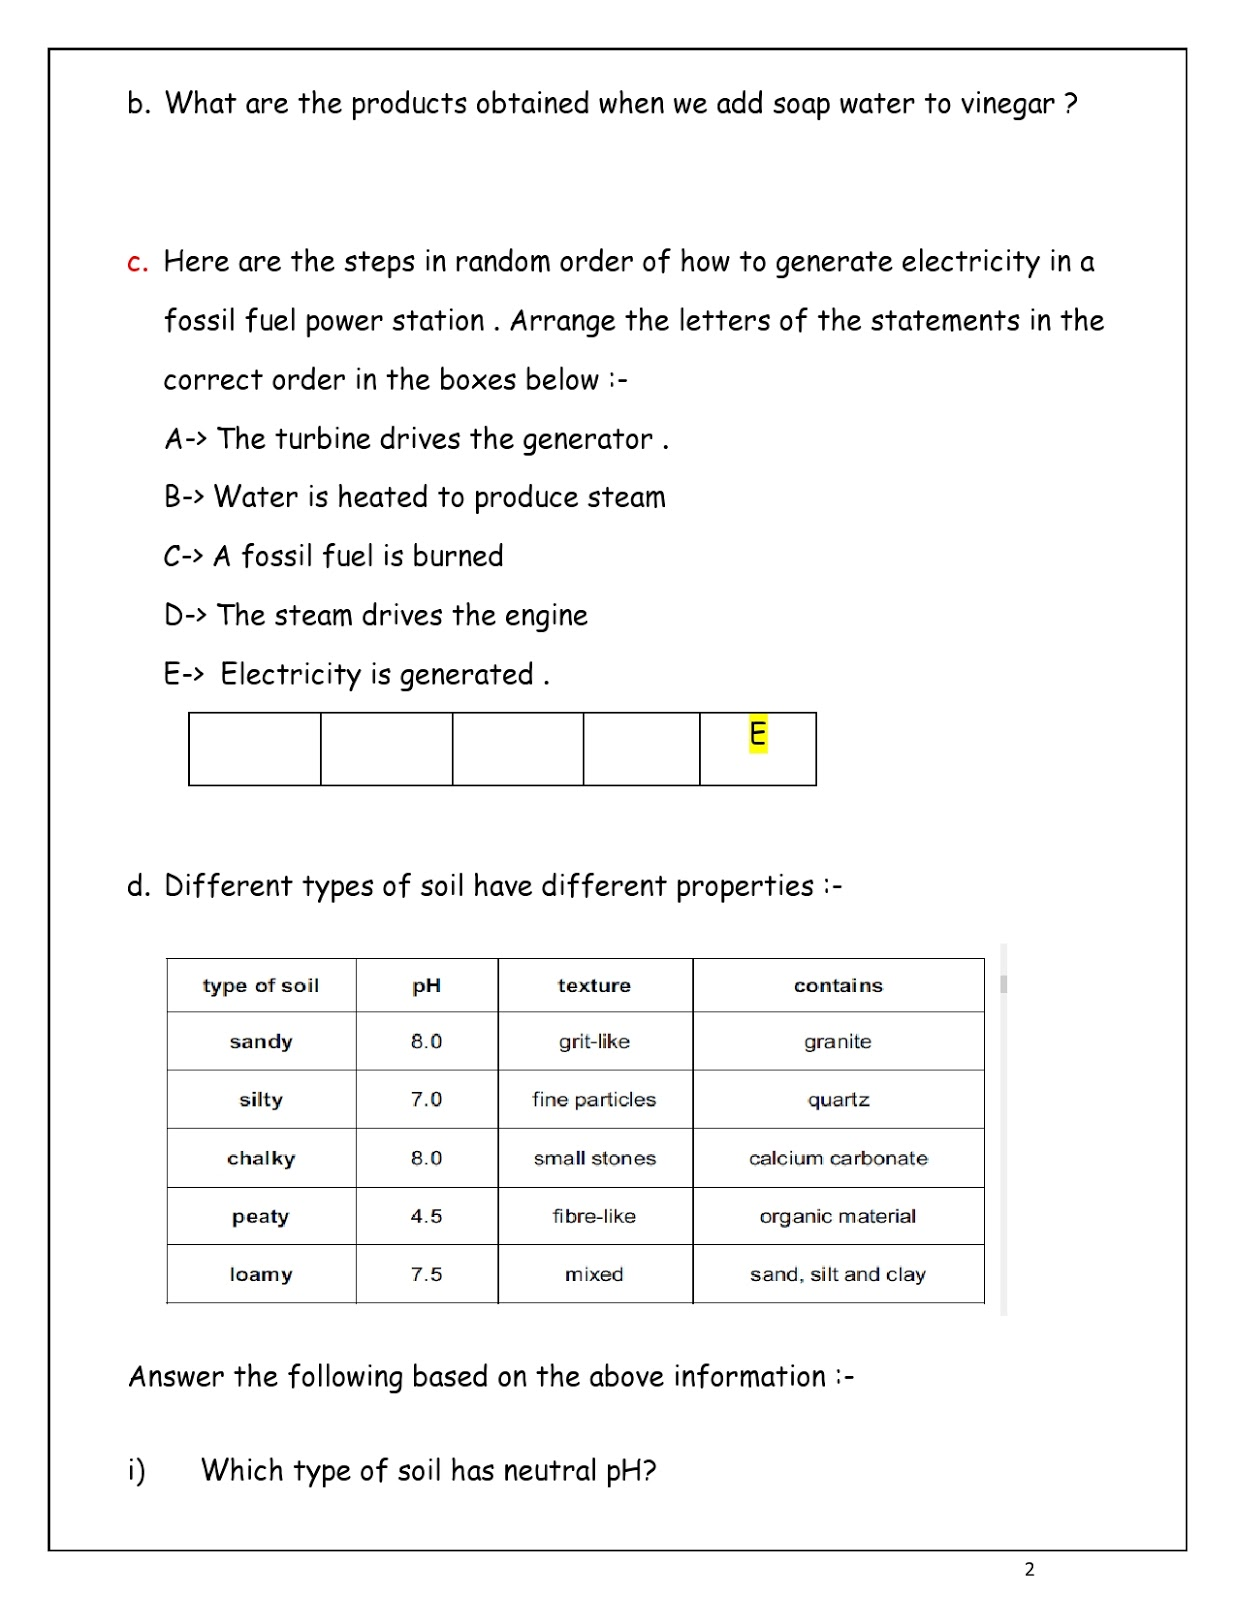 WORLD SCHOOL OMAN: Revision Worksheets for Grade 7 as on 13-05-2019 [ 1600 x 1236 Pixel ]